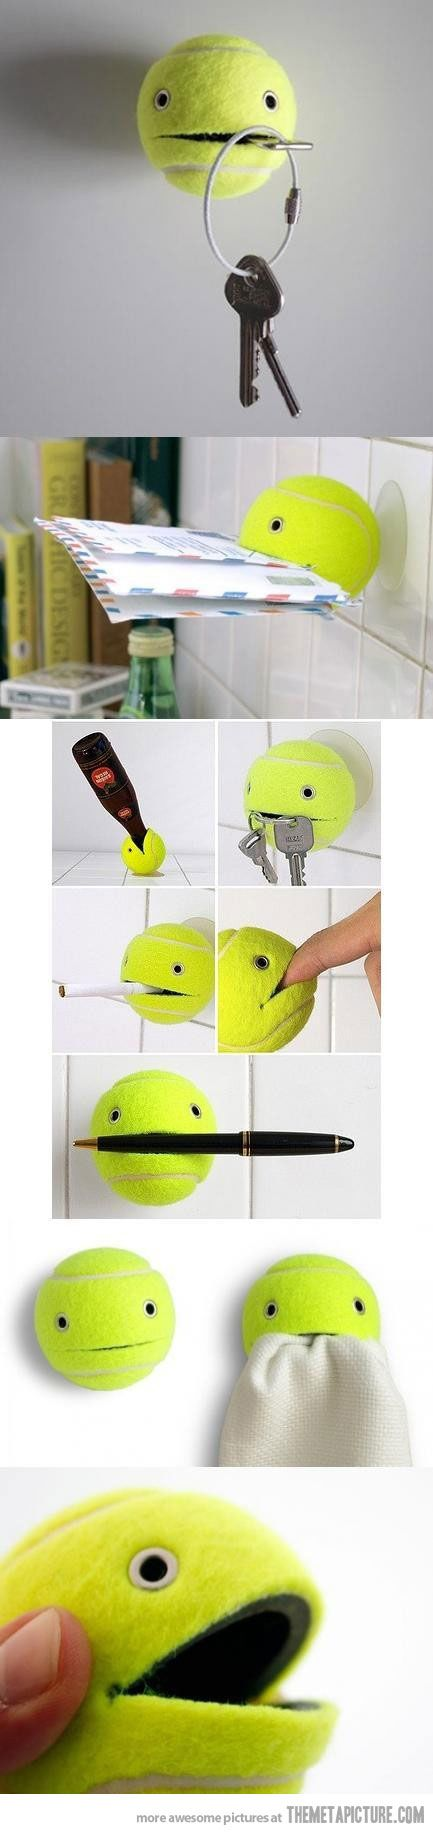 DIY - fun helpful tennis ball